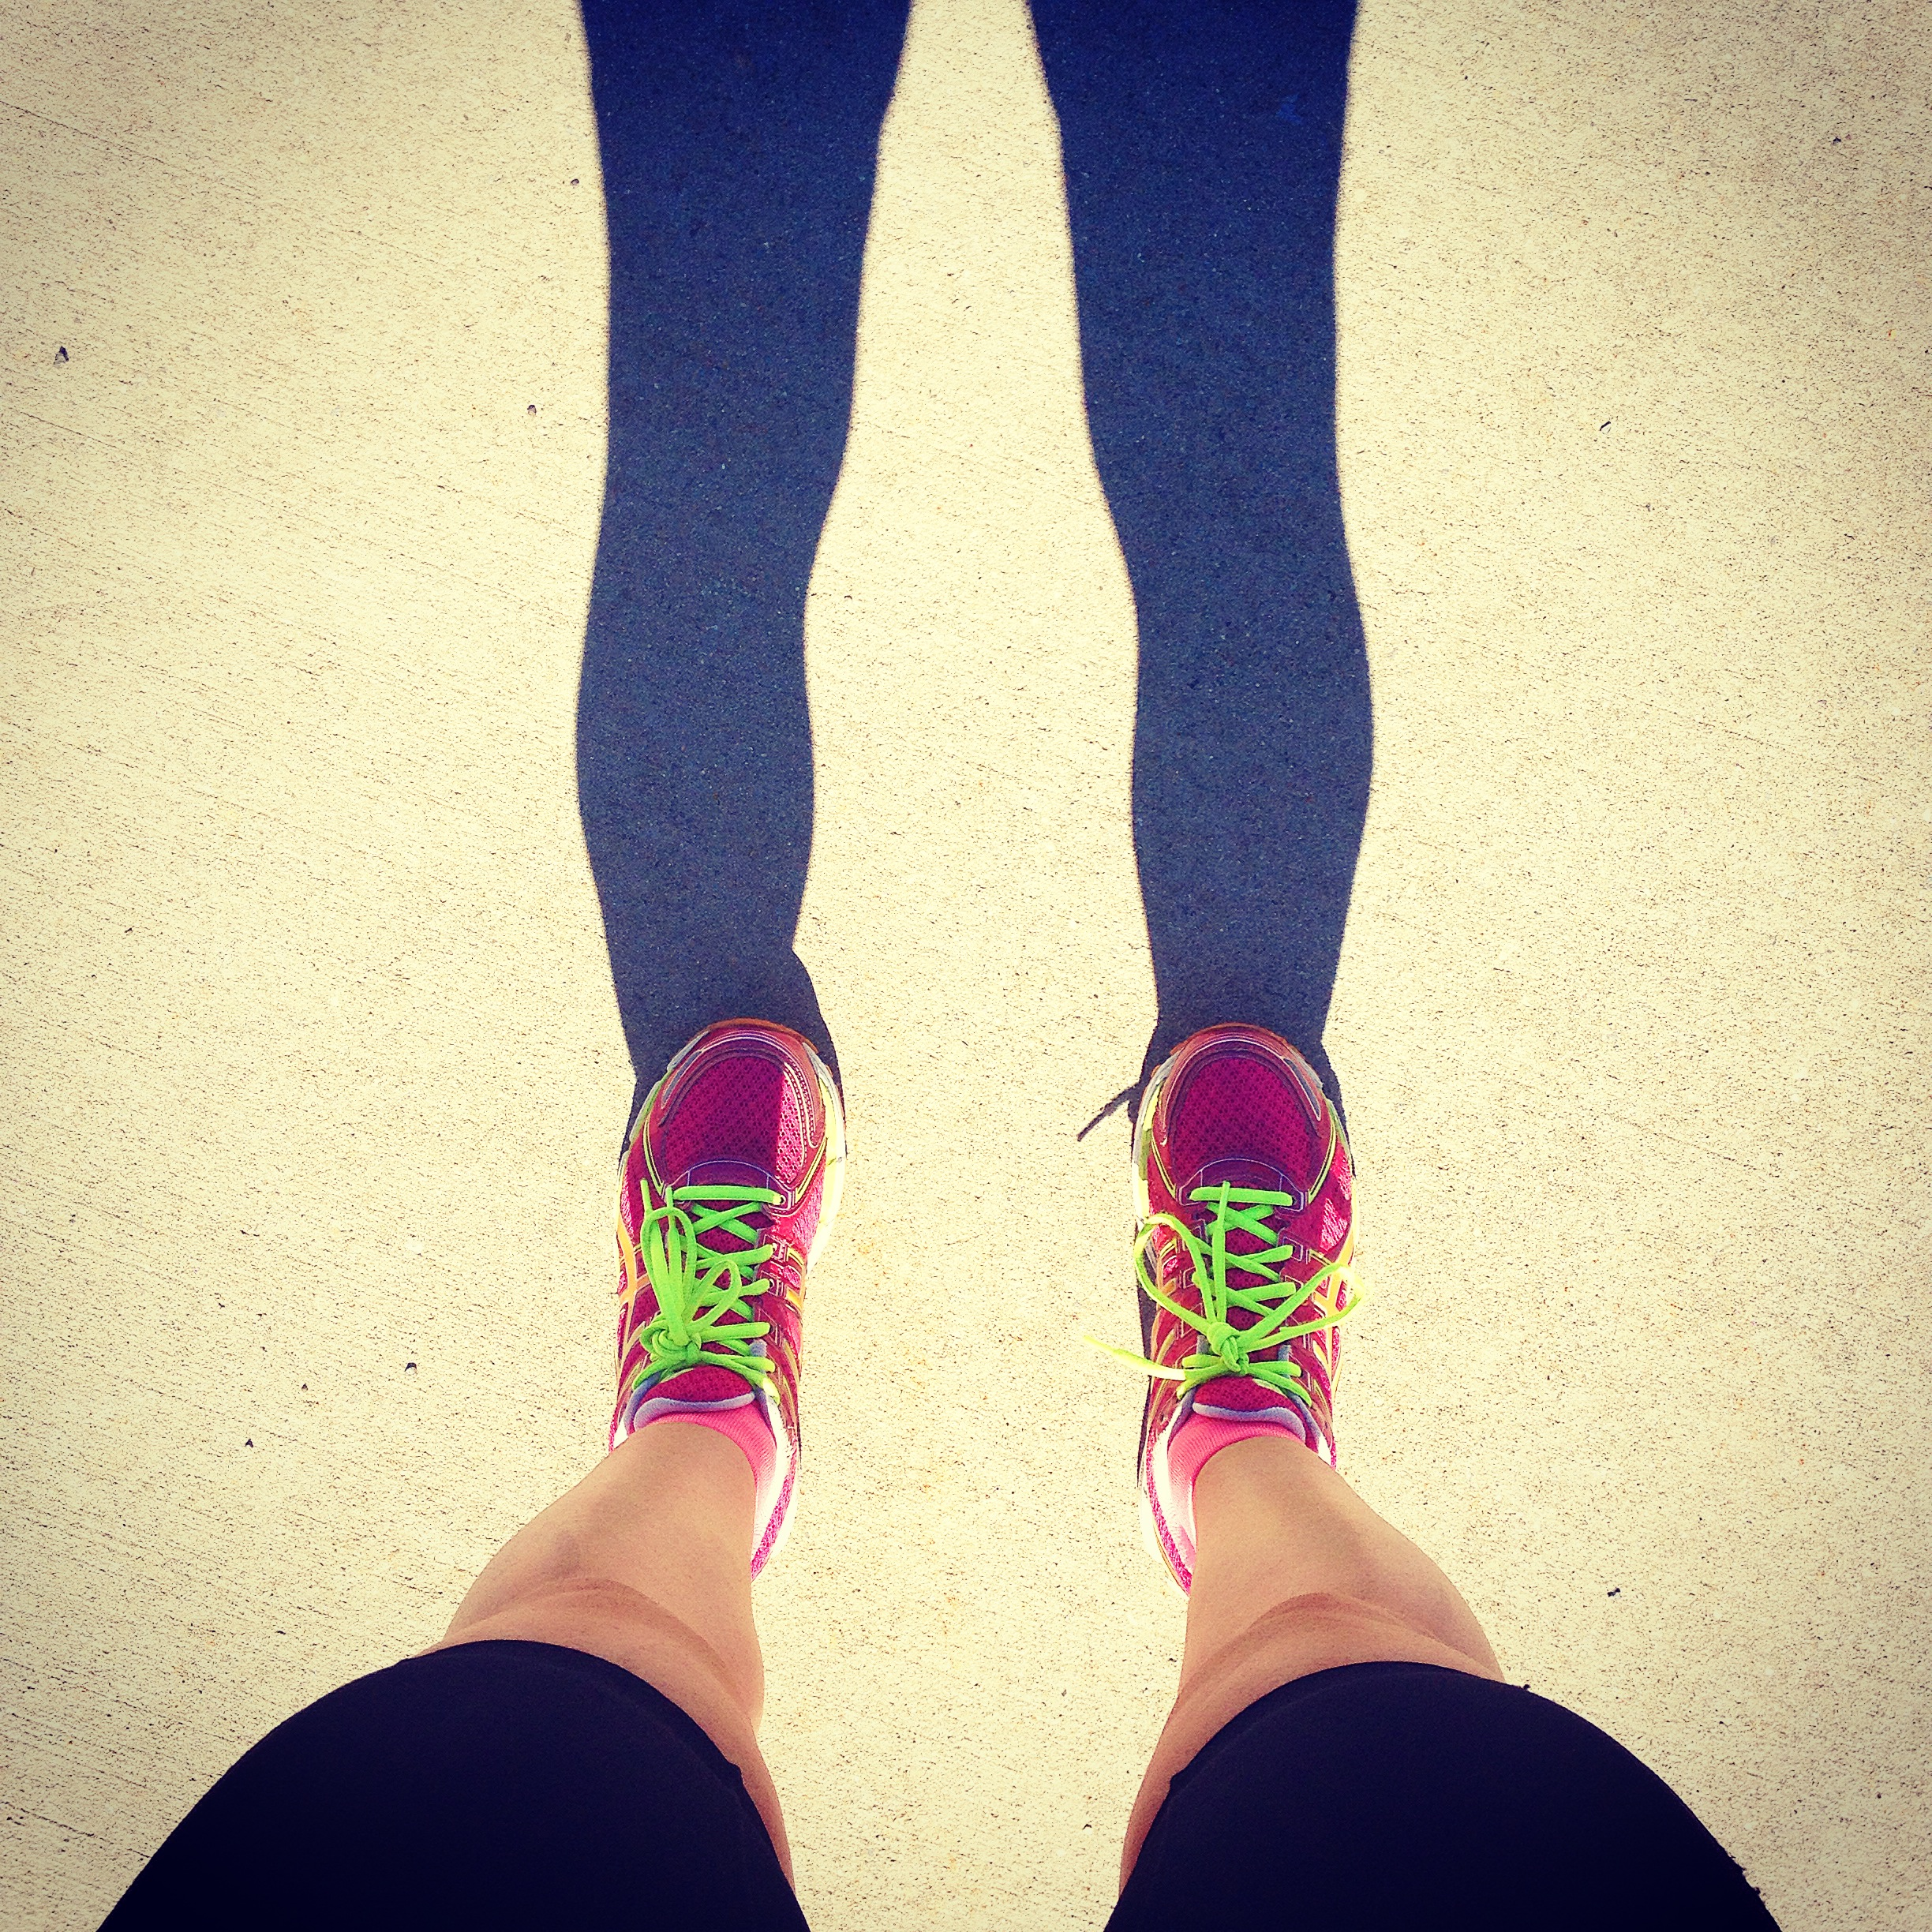 Make a Vday date with yourself. A run should get that heart rate up in no time!